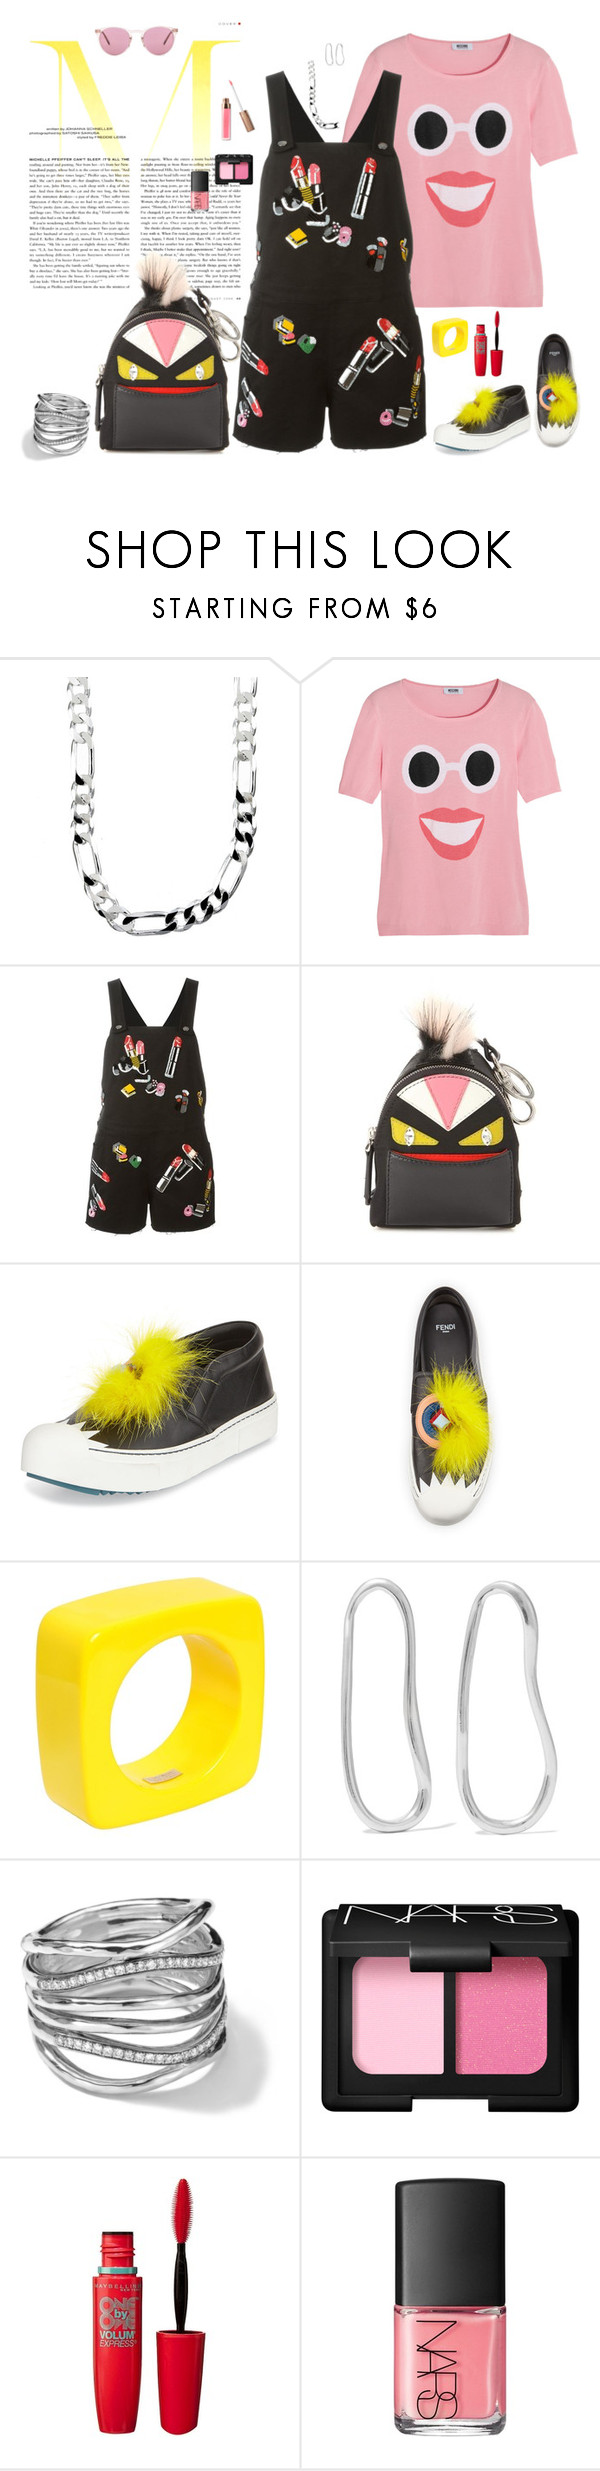 """""""OMF&G - Oliver, Moschino, Fendi, and Giamba"""" by riquee ❤ liked on Polyvore featuring Sterling Essentials, Boutique Moschino, Giamba, Fendi, Dsquared2, Sophie Buhai, Ippolita, NARS Cosmetics, Maybelline and Oliver Peoples"""